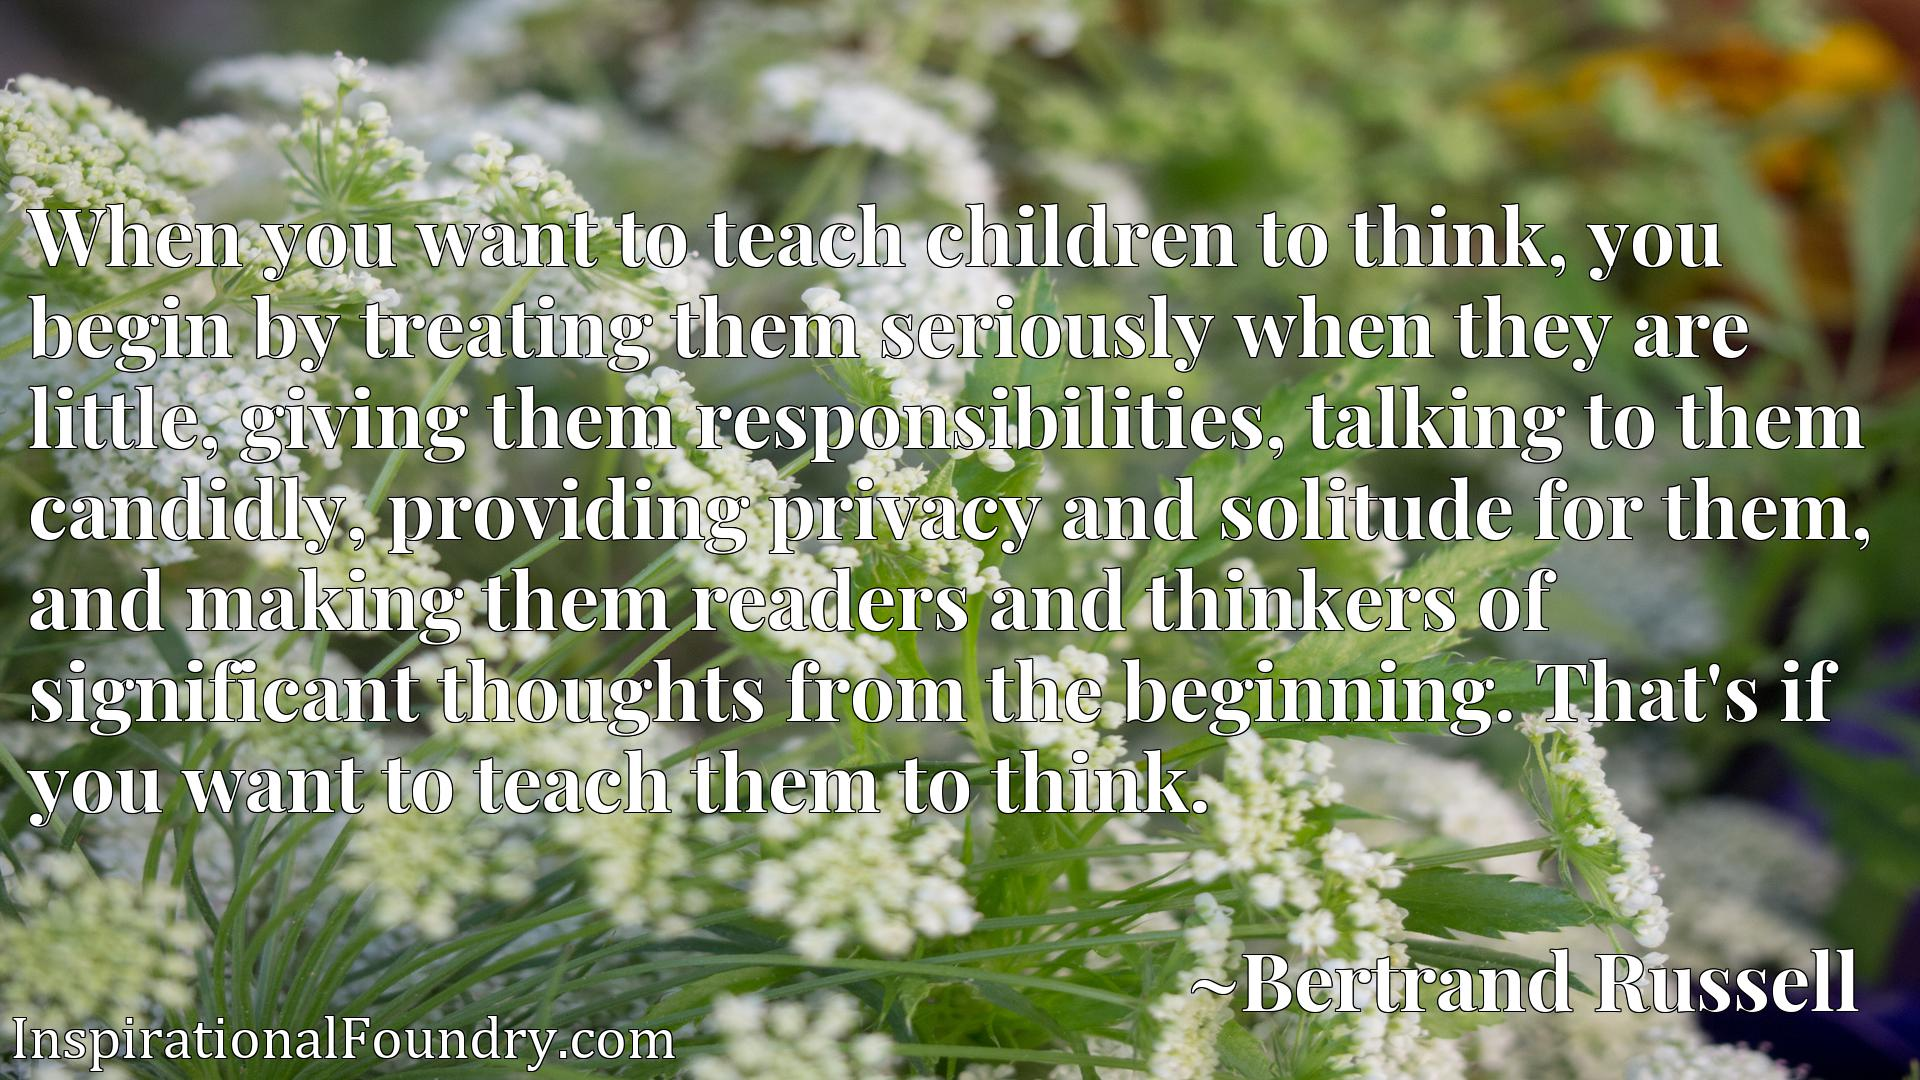 When you want to teach children to think, you begin by treating them seriously when they are little, giving them responsibilities, talking to them candidly, providing privacy and solitude for them, and making them readers and thinkers of significant thoughts from the beginning. That's if you want to teach them to think.